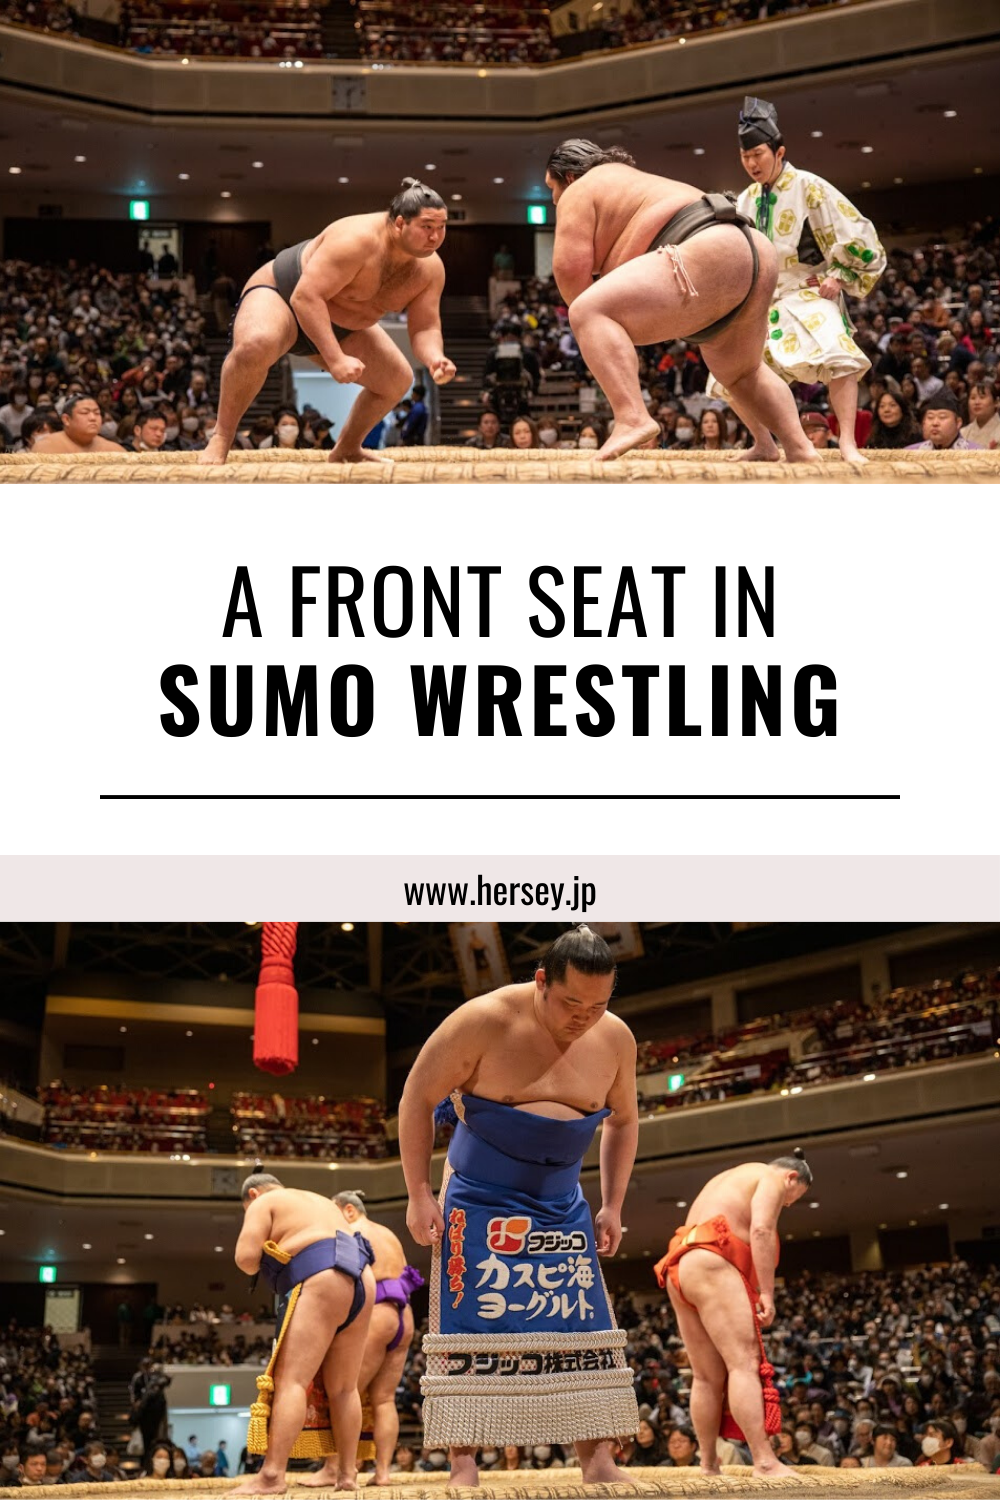 We got some exclusive front row seats at a sumo wrestling show and here are a few of the amazing things we learned about sumo wrestling – I hope these will encourage you to go and see a tournament yourself!  #sumowrestling #japansport  #japaneseculture #rikishi #Kokugikan #businesstraveller #businesstravel #millionaire #millionairelifestyle #billionairelifestyle #luxurylifestyle #businesswoman #businessman #luxurytravel #travelandleisure #tokyo #tokyotravel #japaneseculture #viptravel